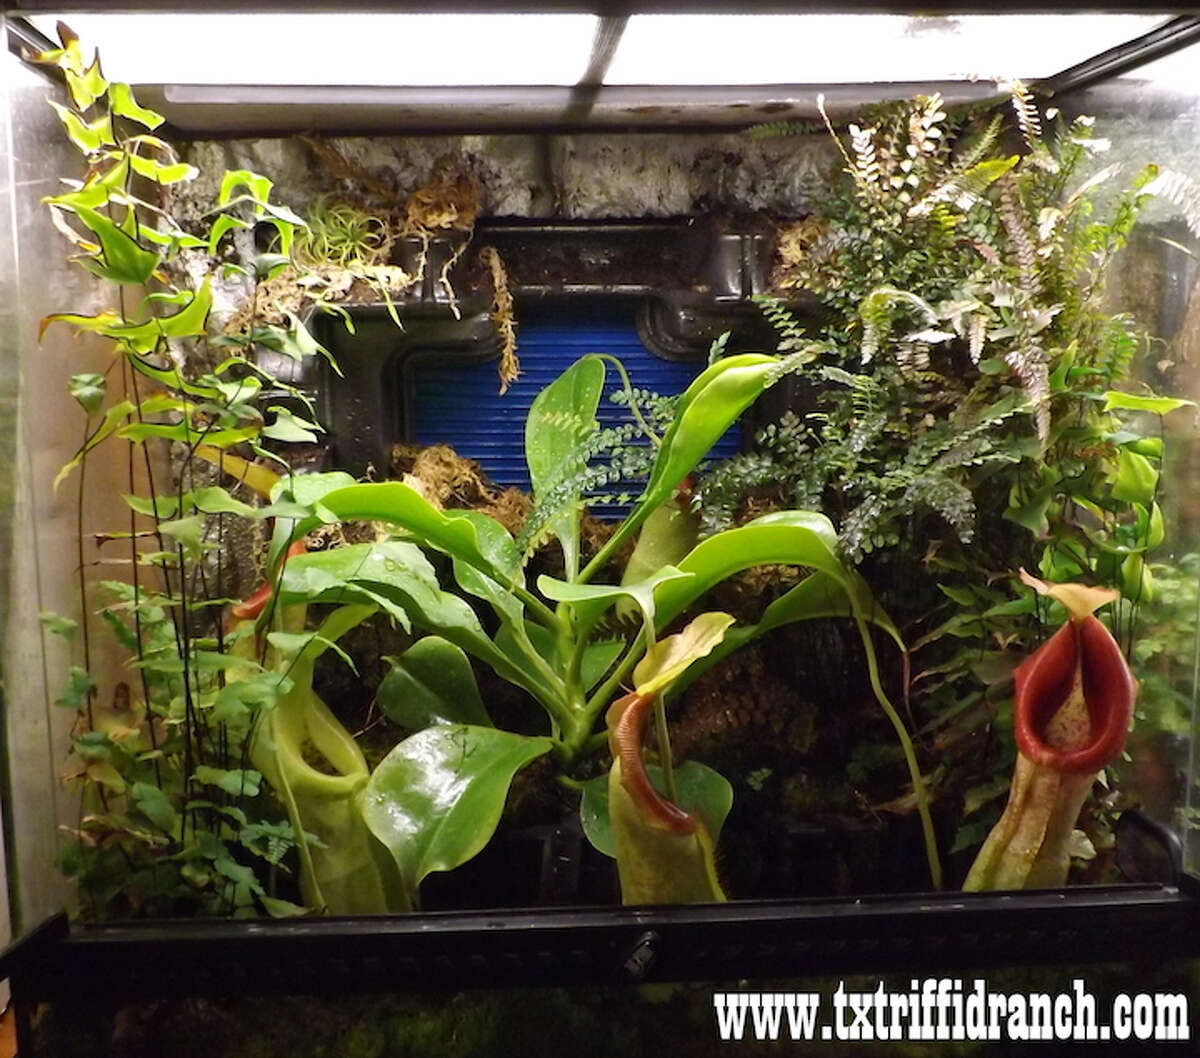 Many of the enclosures include a variety of plants that are curated to fit a requested theme, usually connected to a horror film or piece of literature.